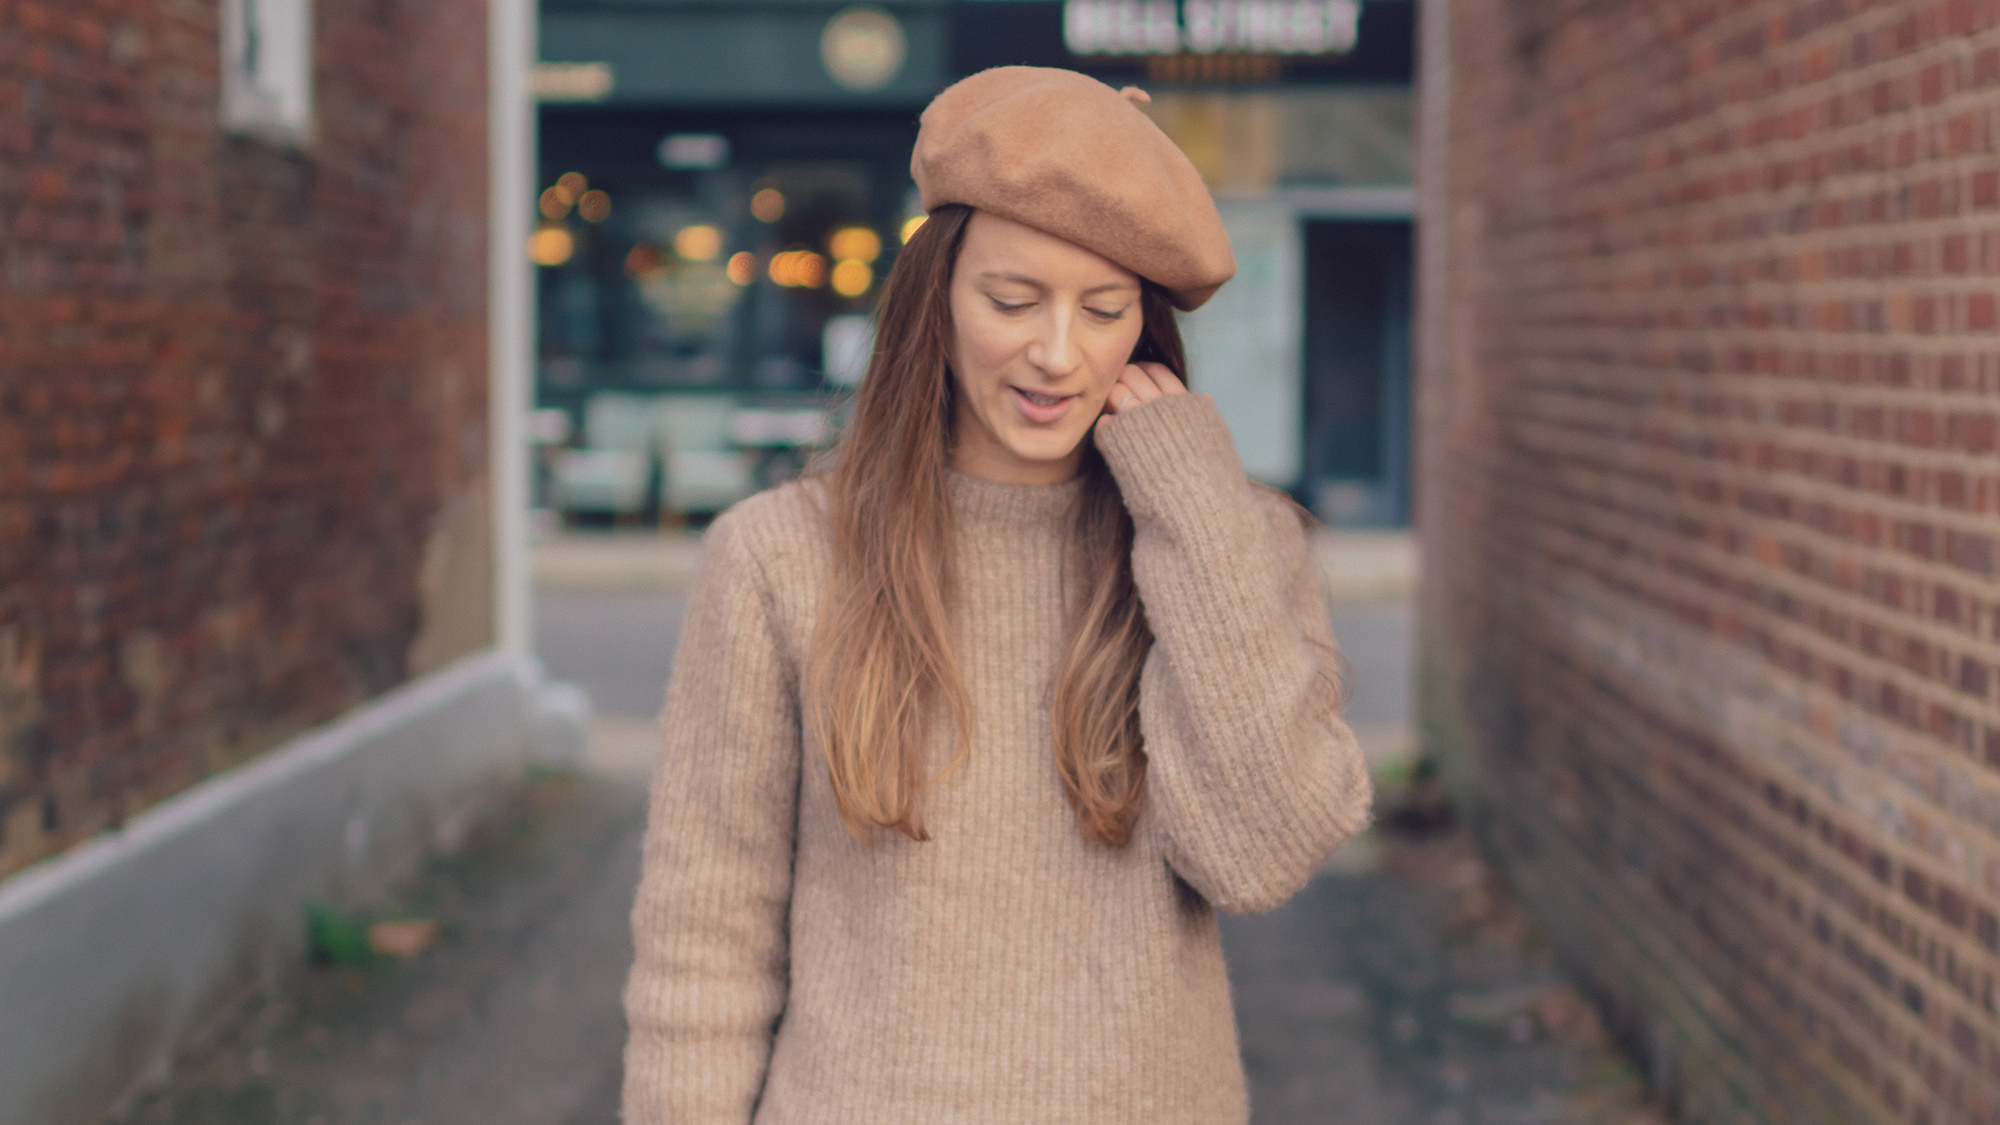 bbd6ee1c5997c How To Wear A Beret If You  Don t Suit Hats (And Where To Buy Them)